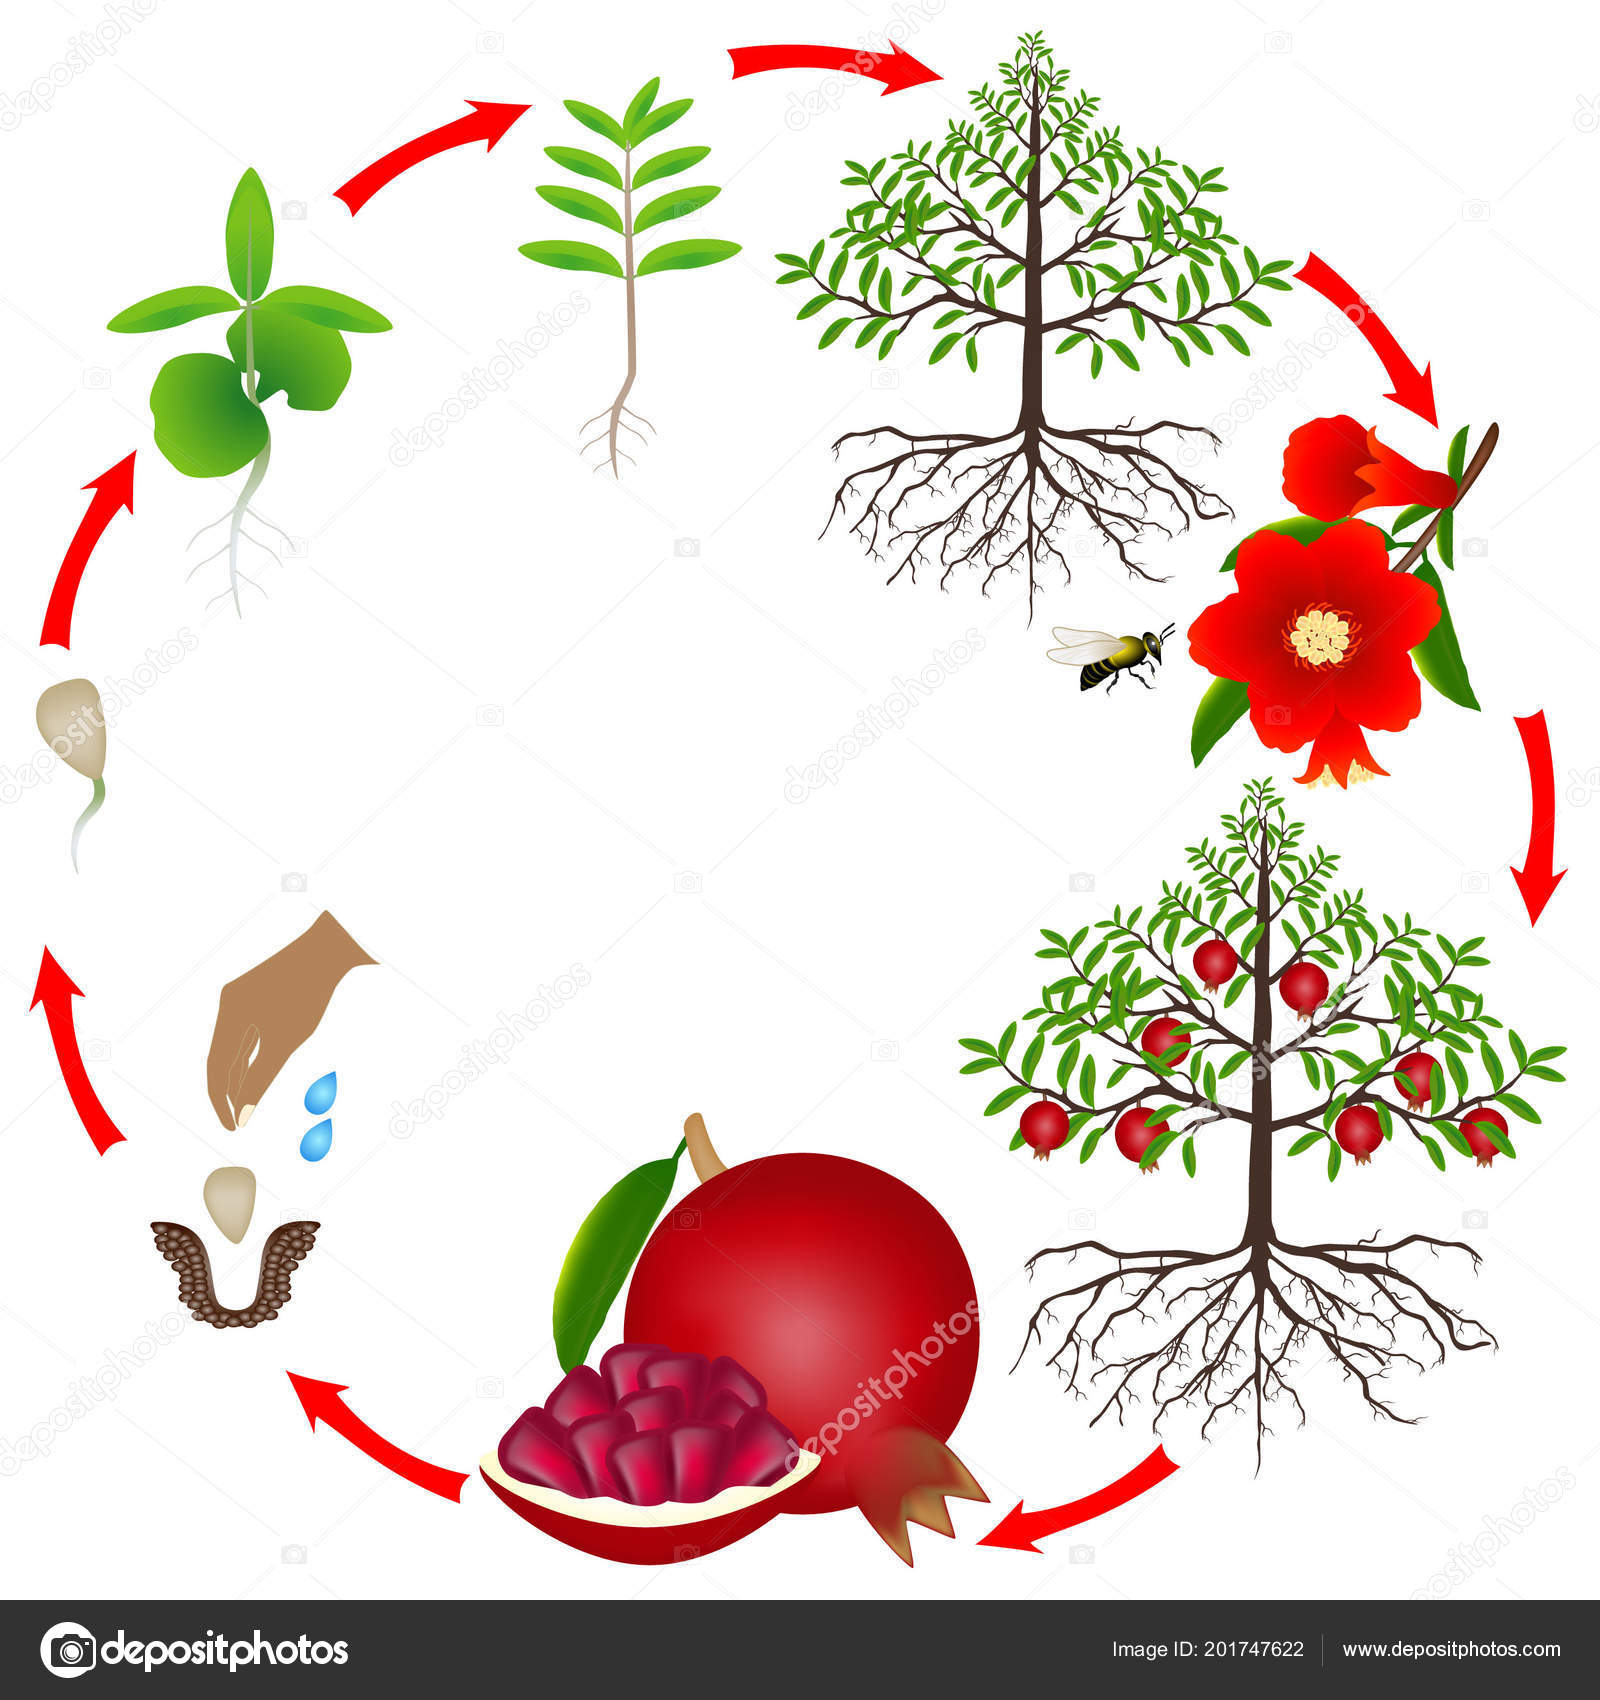 Life Cycle Pomegranate Tree White Background Vector Image By C Zaqzaq81 Vector Stock 201747622